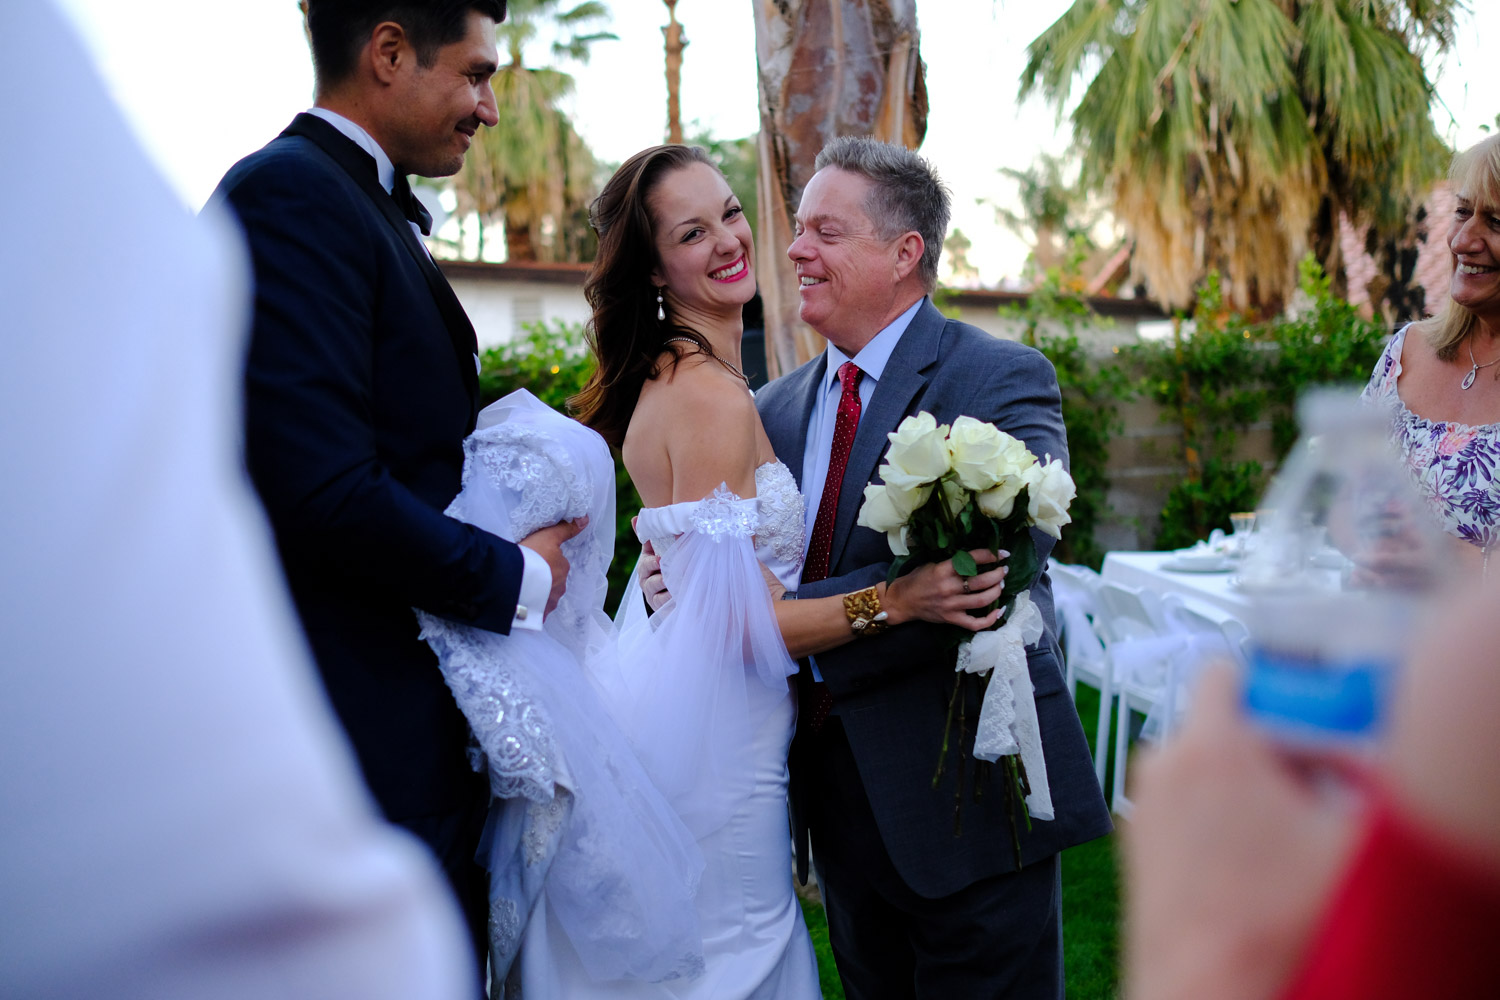 - Street photography means we remain unobtrusive and photograph your wedding as it unfolds.The focus of your wedding day is about you and your happiness. The last thing we do is detract from that.